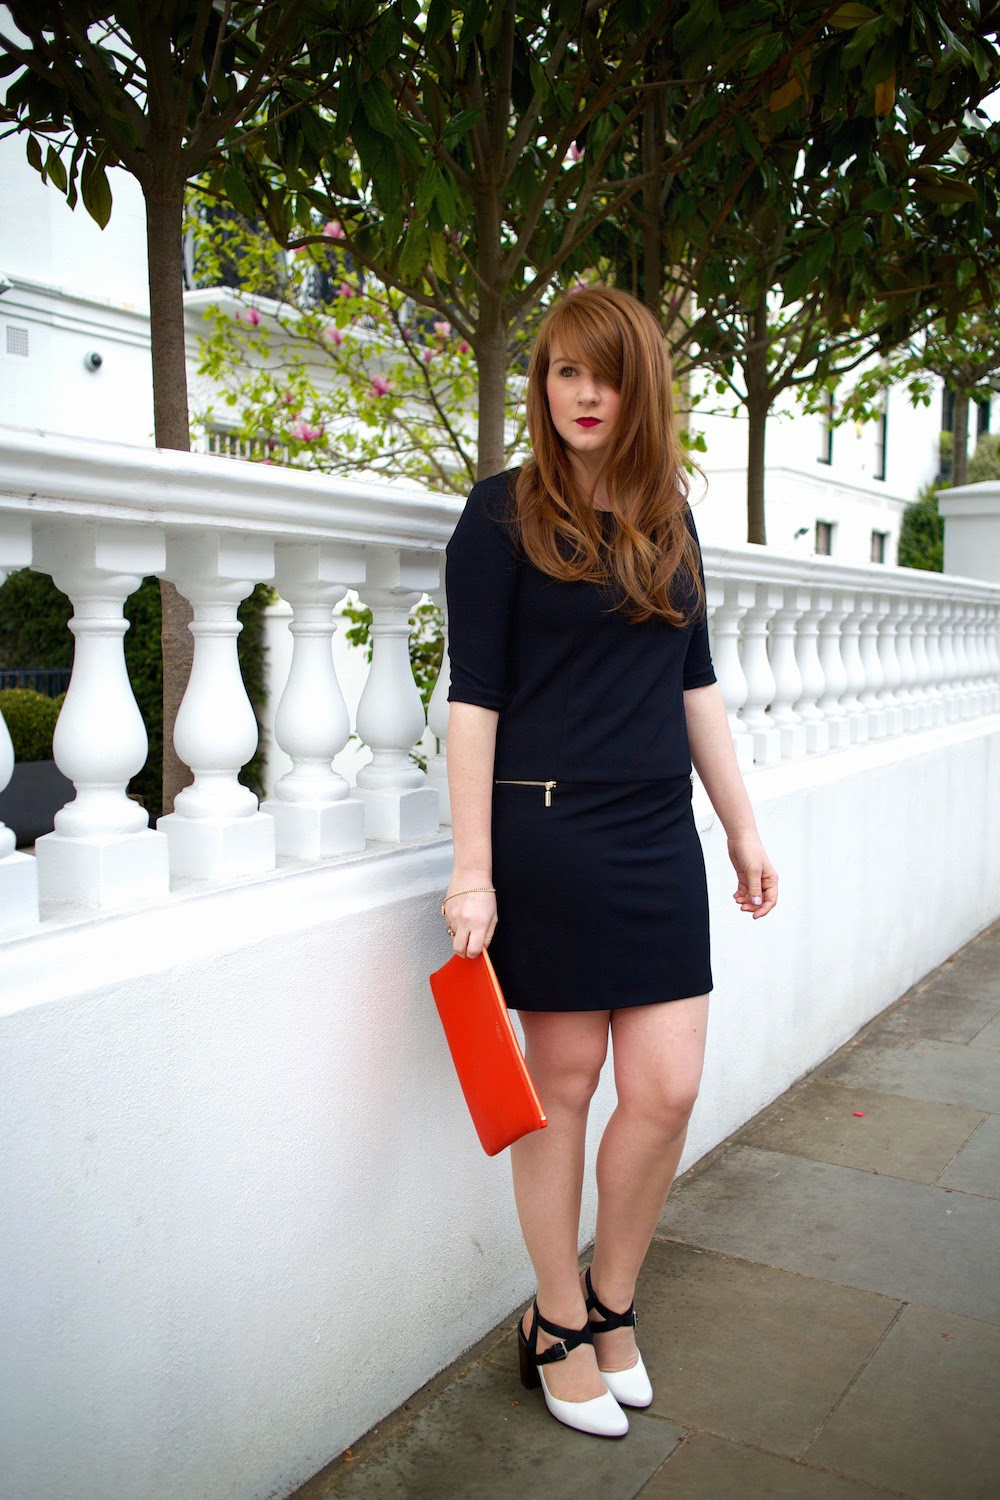 rinacscimento black shift dress from one65 and clarks crumble spice shoes